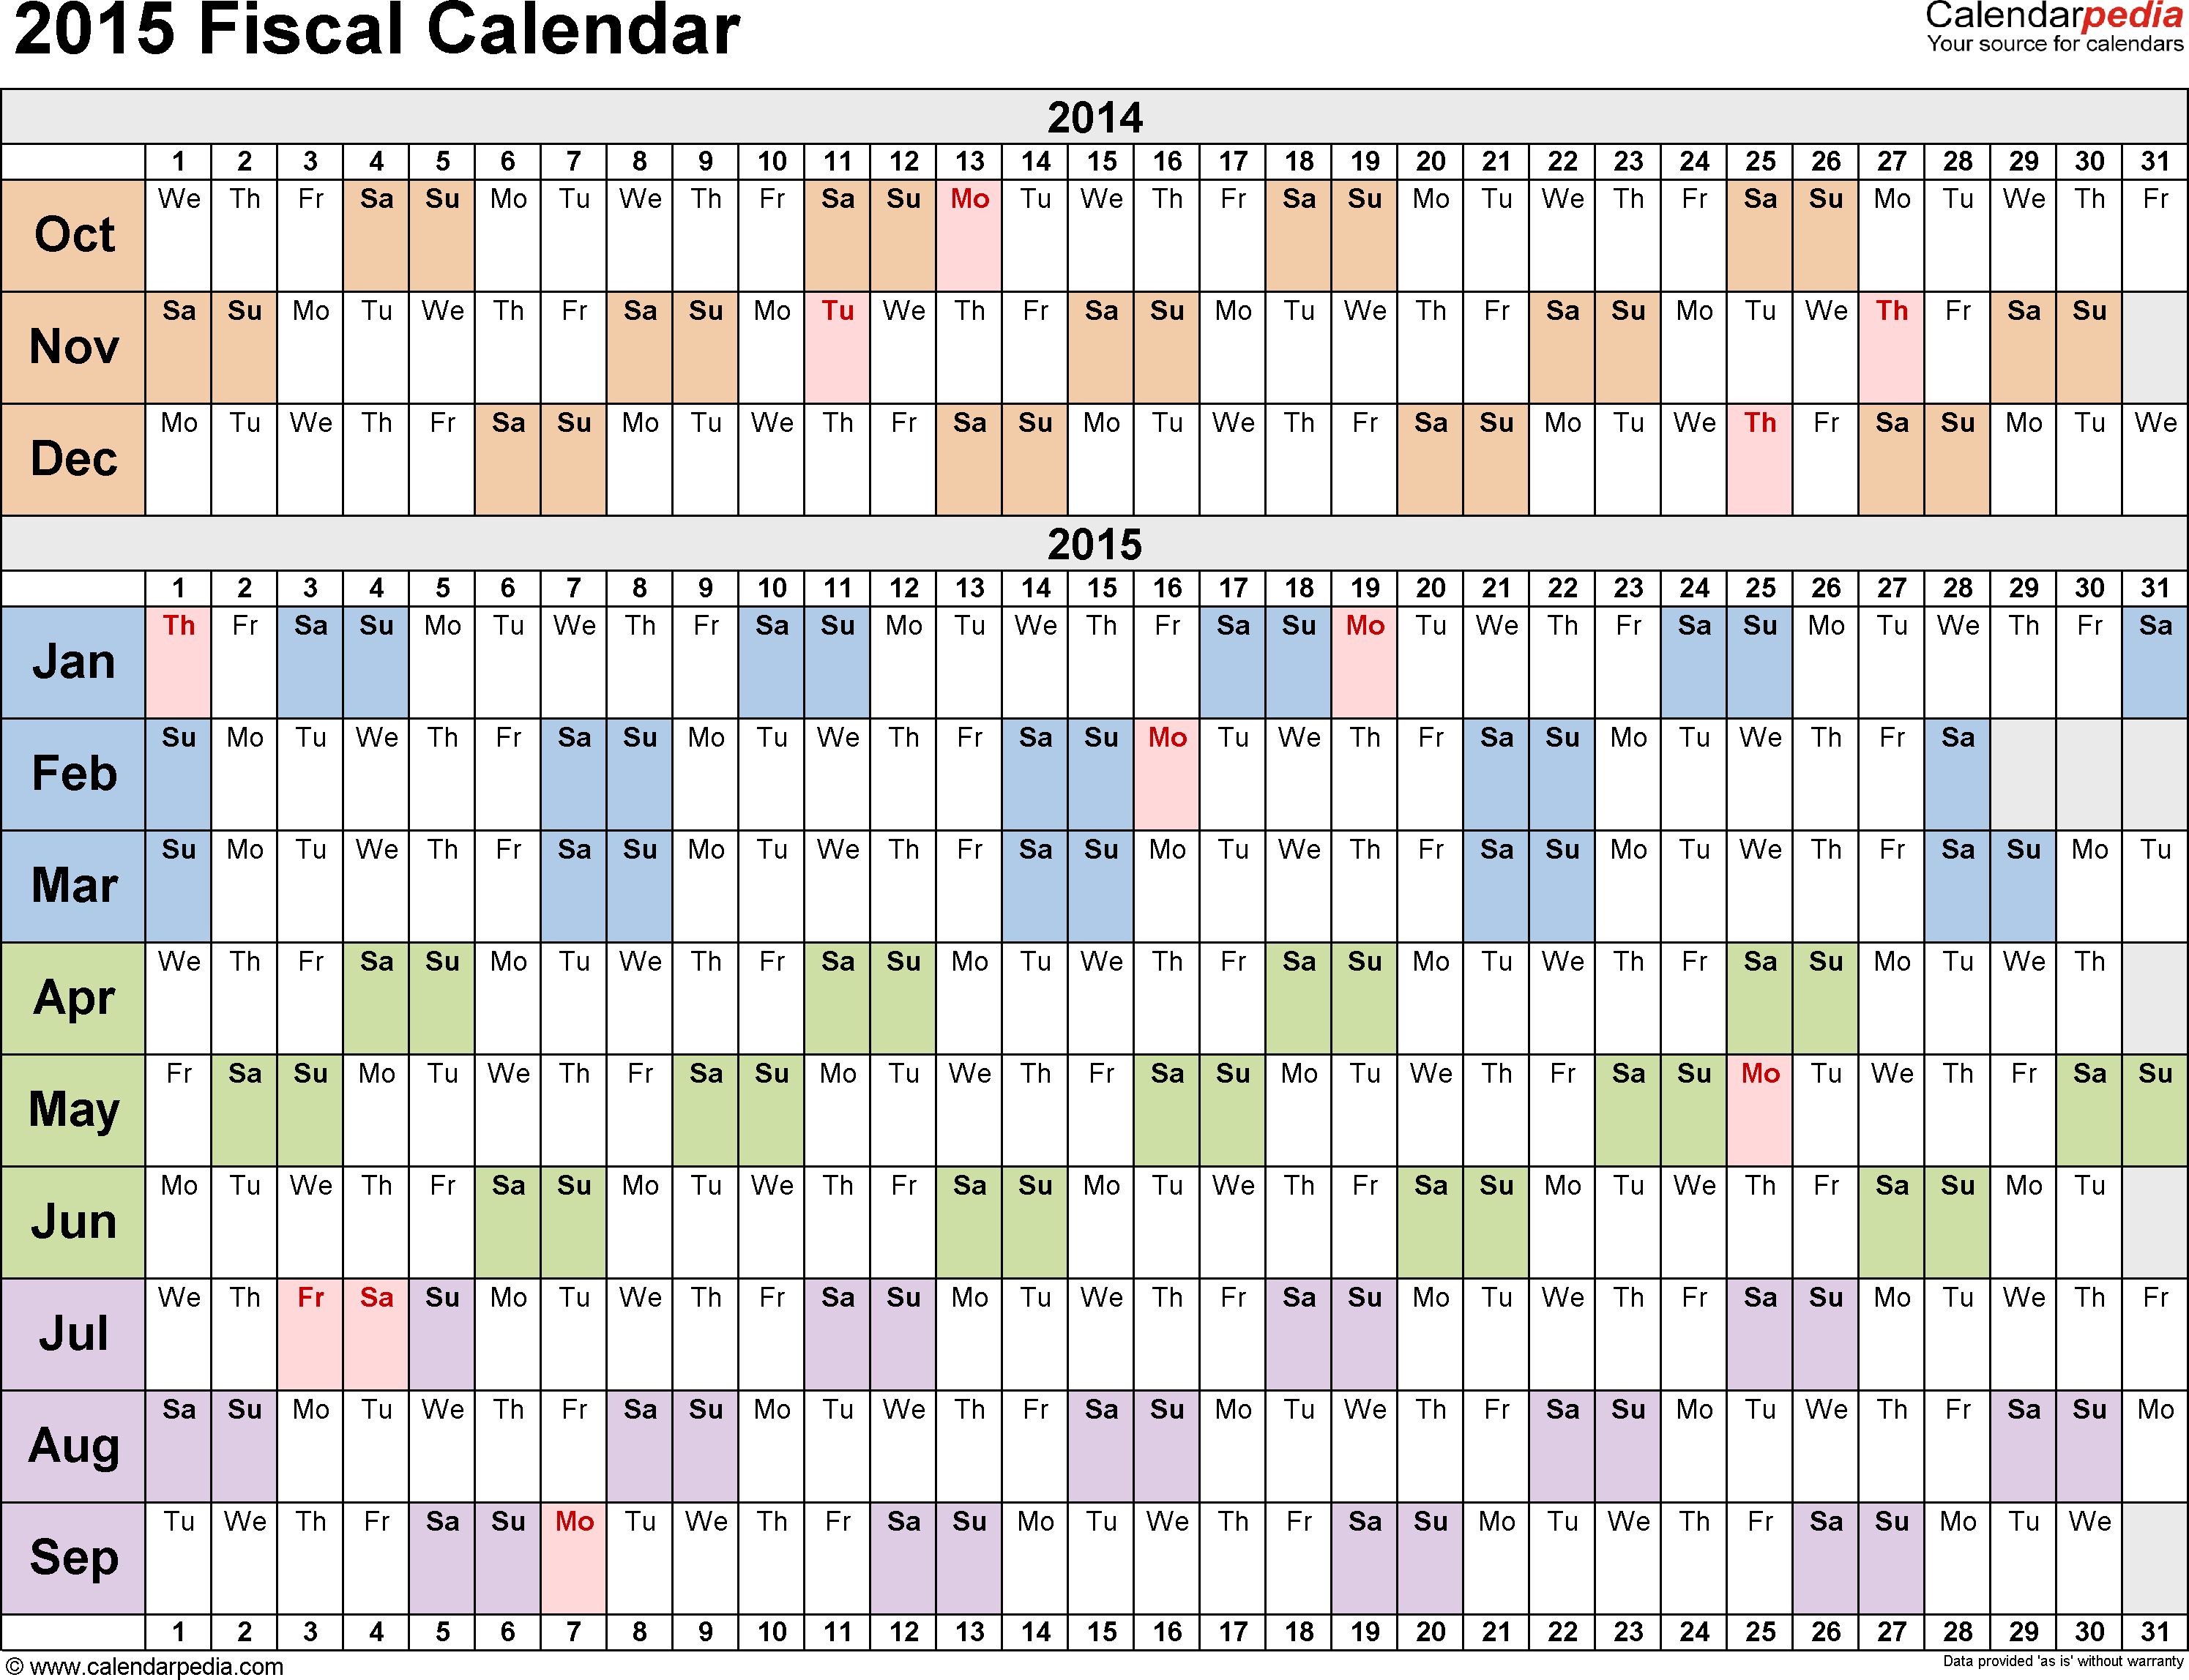 Fiscal Calendars 2015 As Free Printable Word Templates